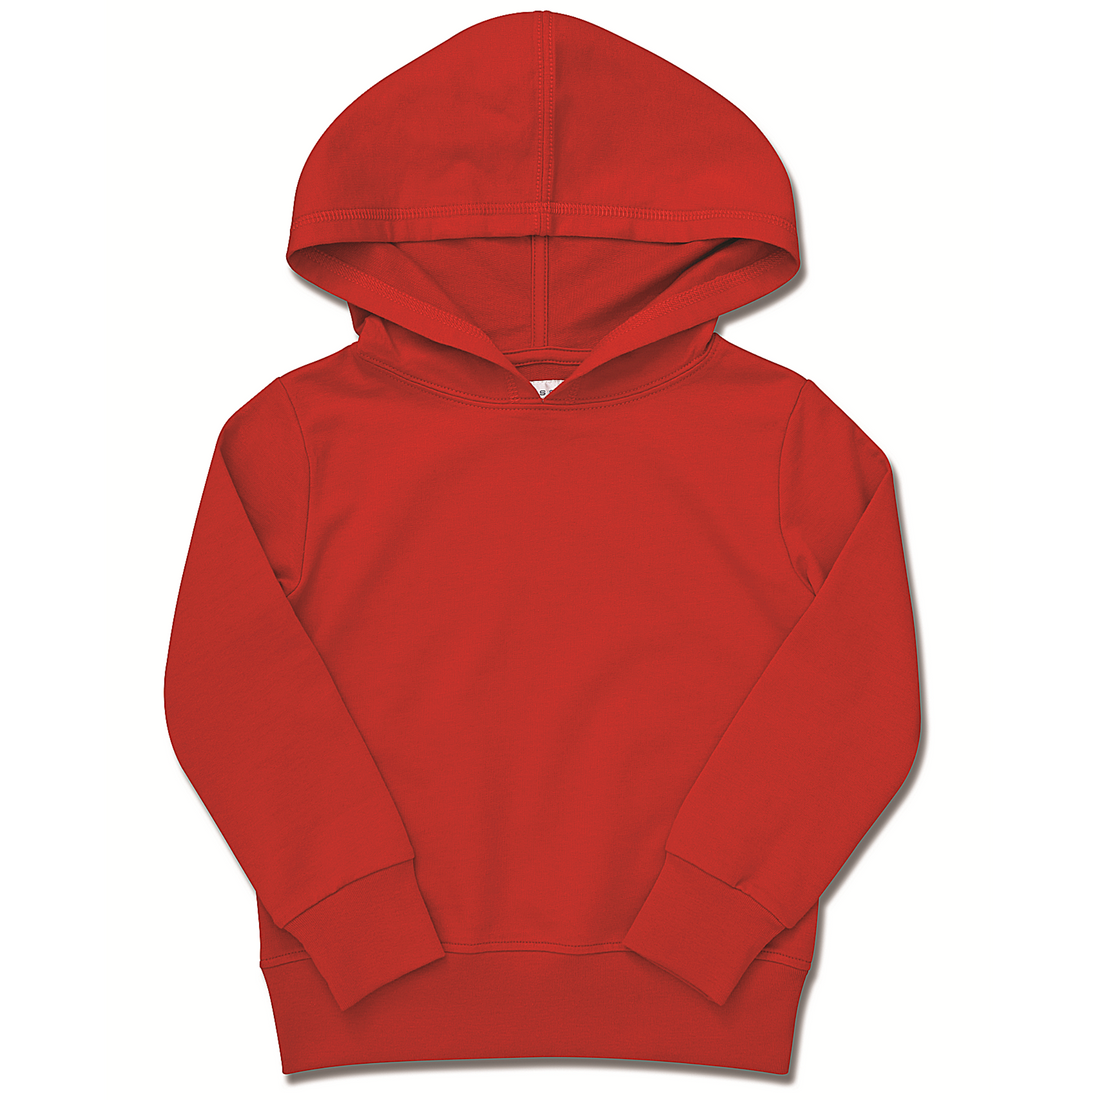 Hoodie Red - Classic Luxury Baby and Children's clothing | KelseyMaclean.com